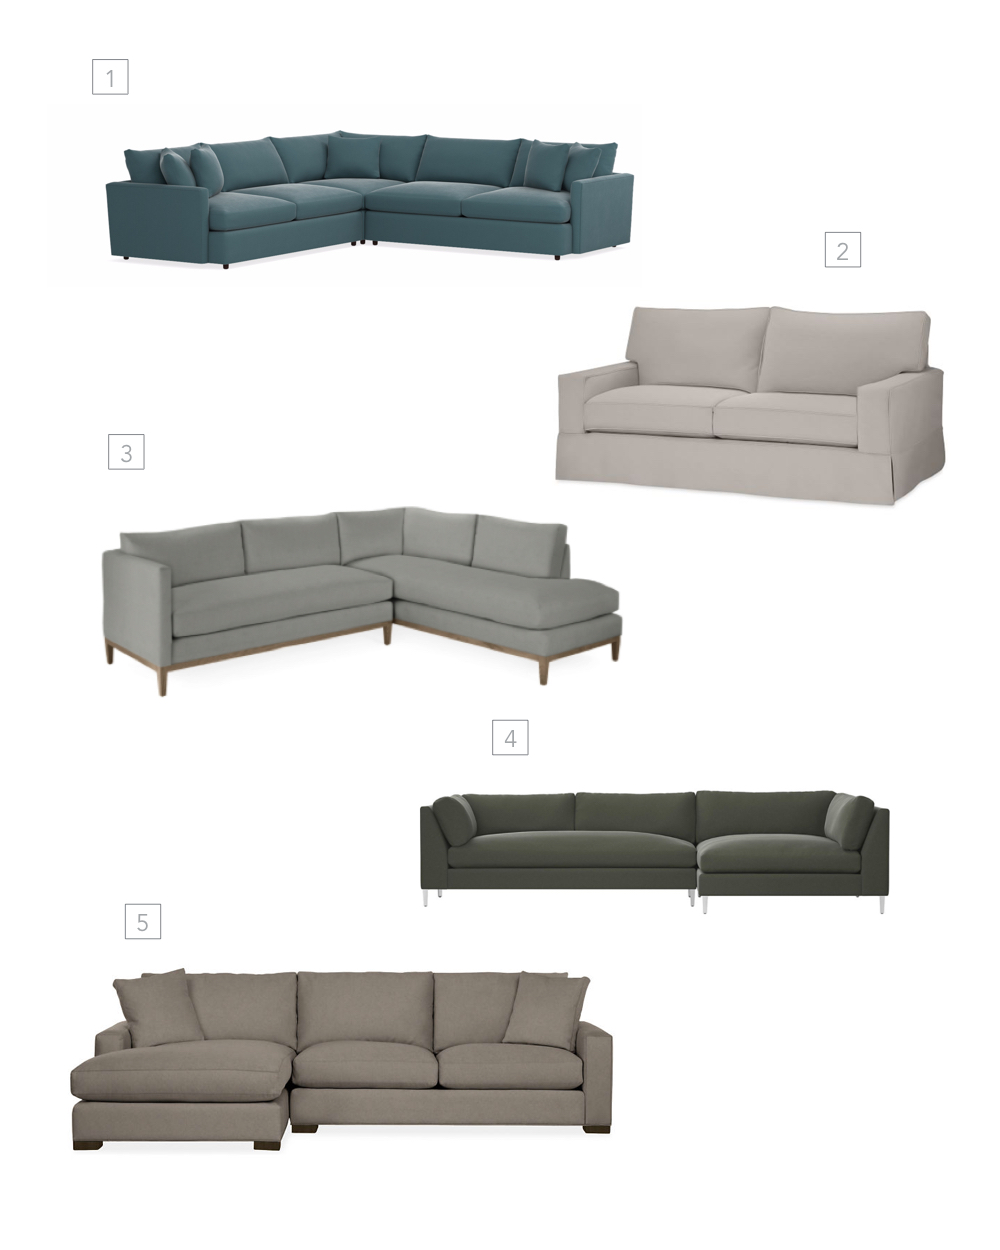 family friendly sofas.001.jpeg